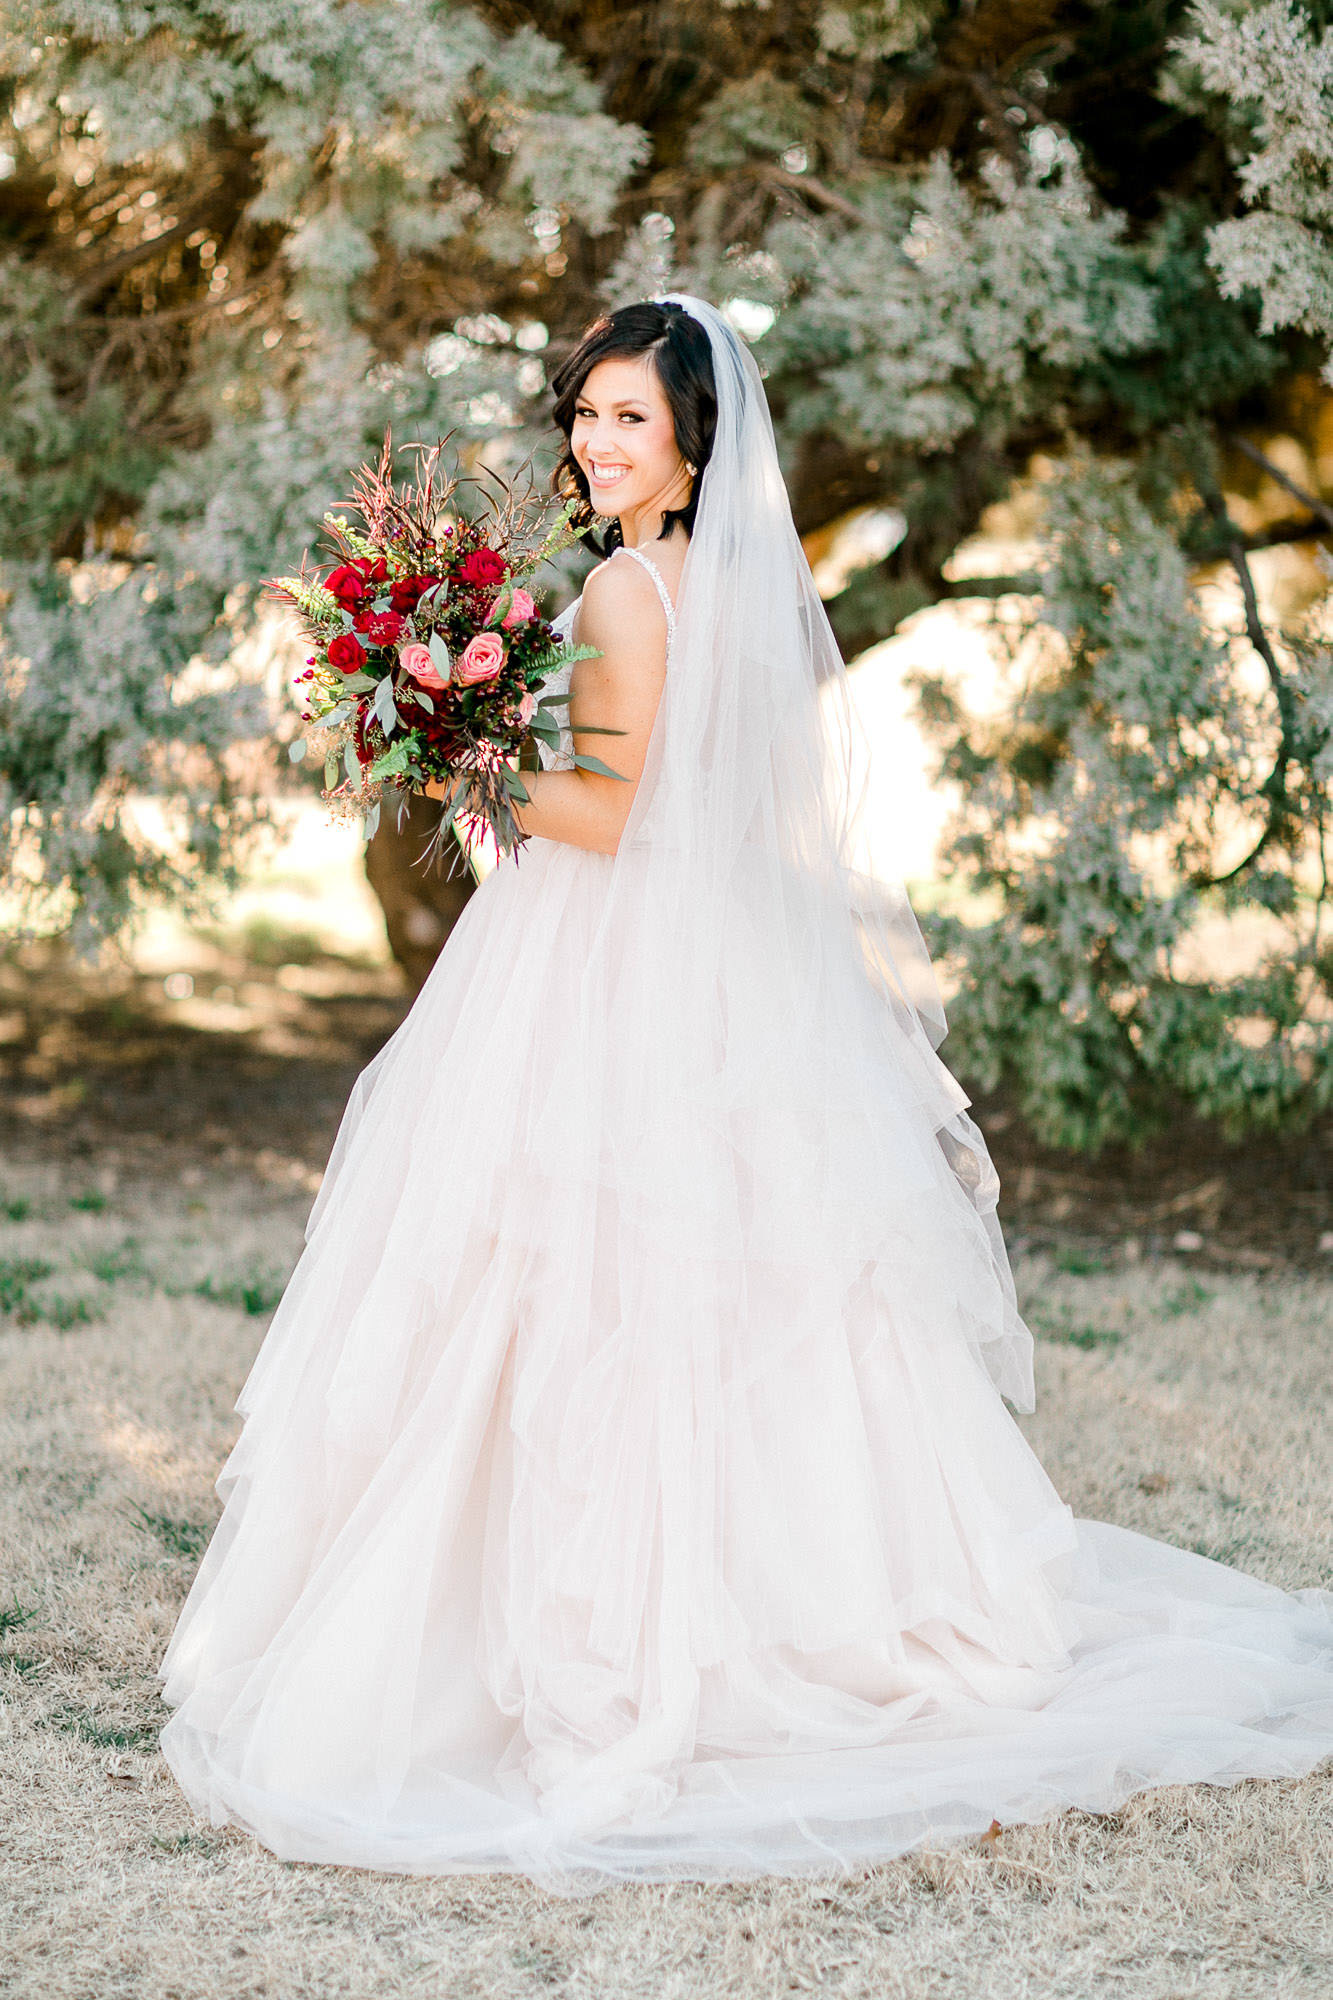 alleej-lubbock-wedding-photographer-bridal-sessions-caprock-winery-texas-tech-eberley-brooks_0001.jpg